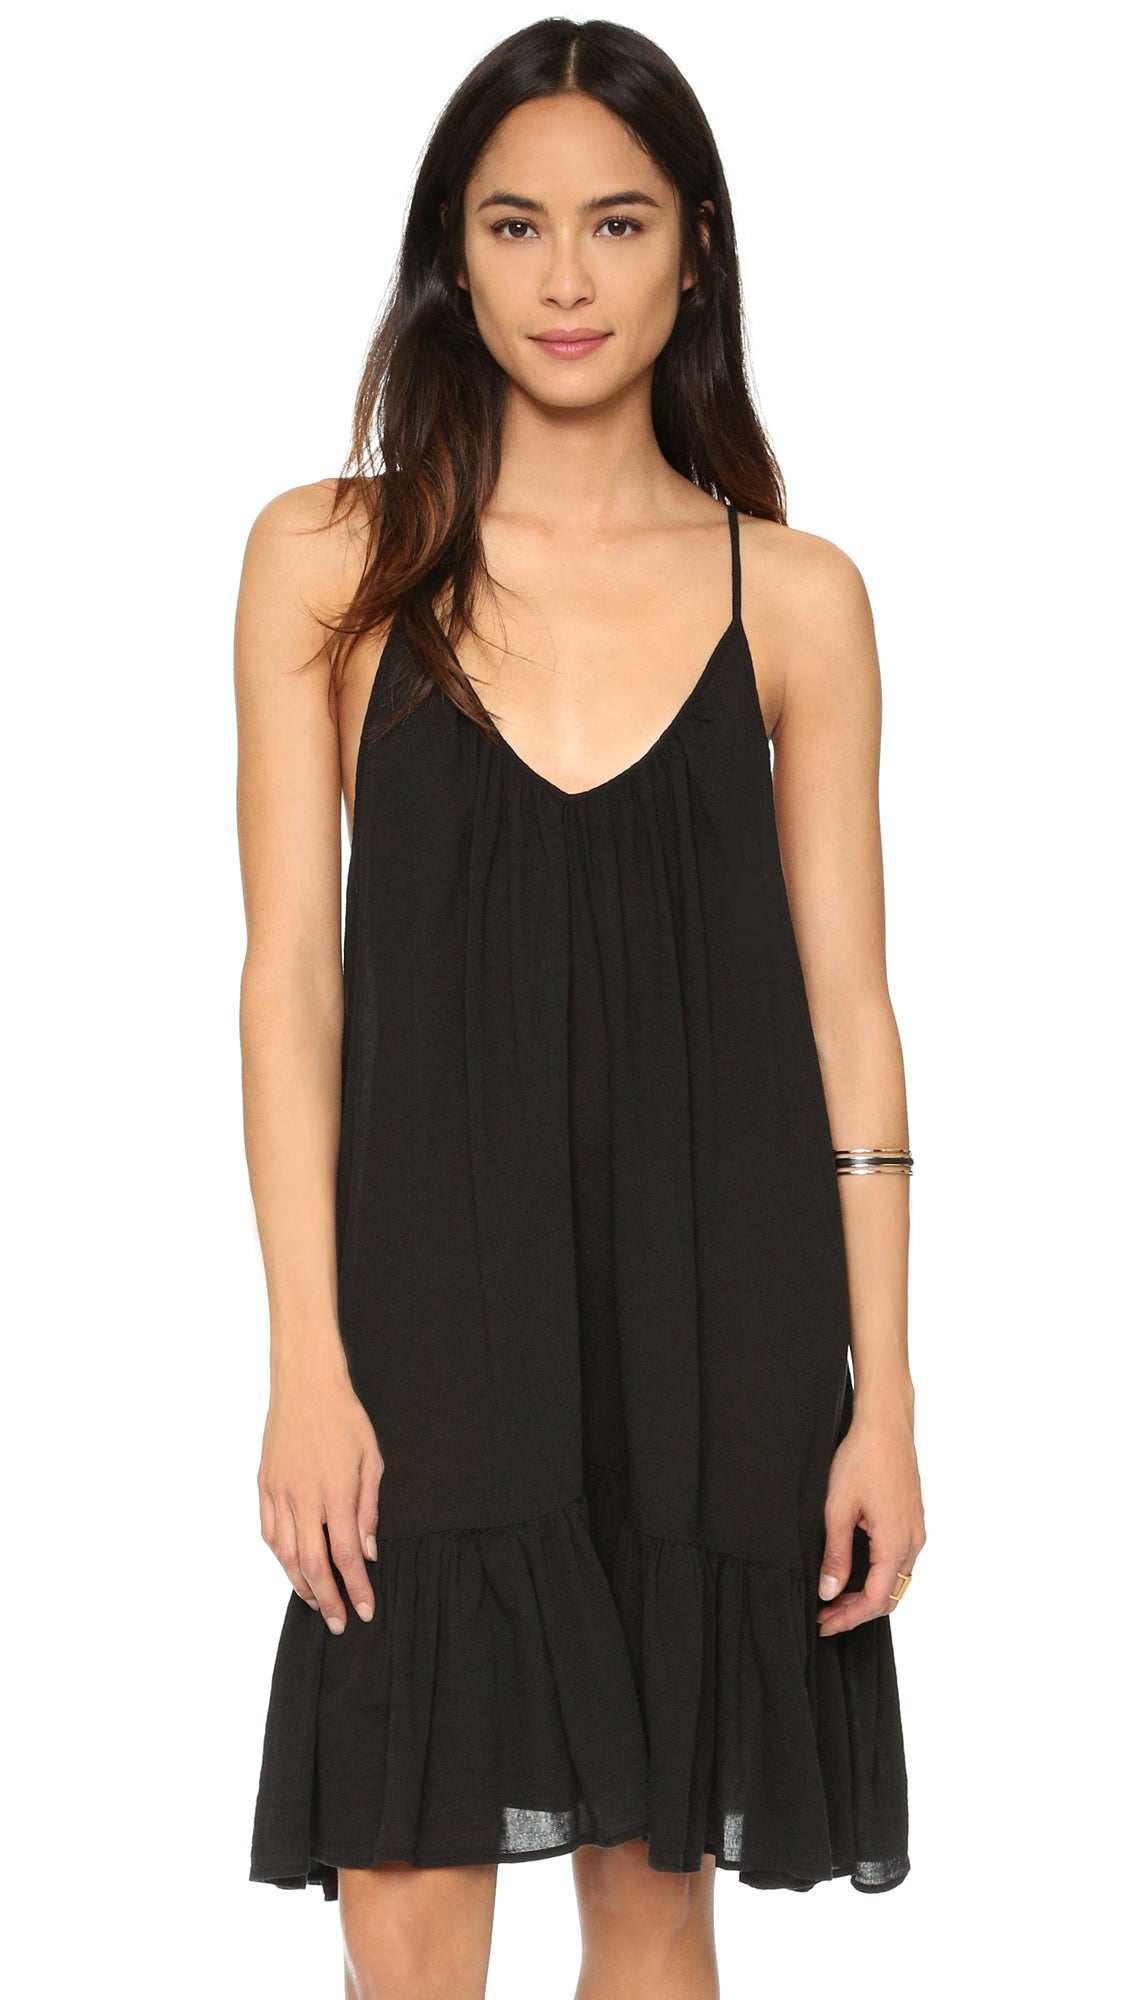 9Seed St Tropez Ruffle Cover Up Mini Dress Black Sleeveless | ShopAA